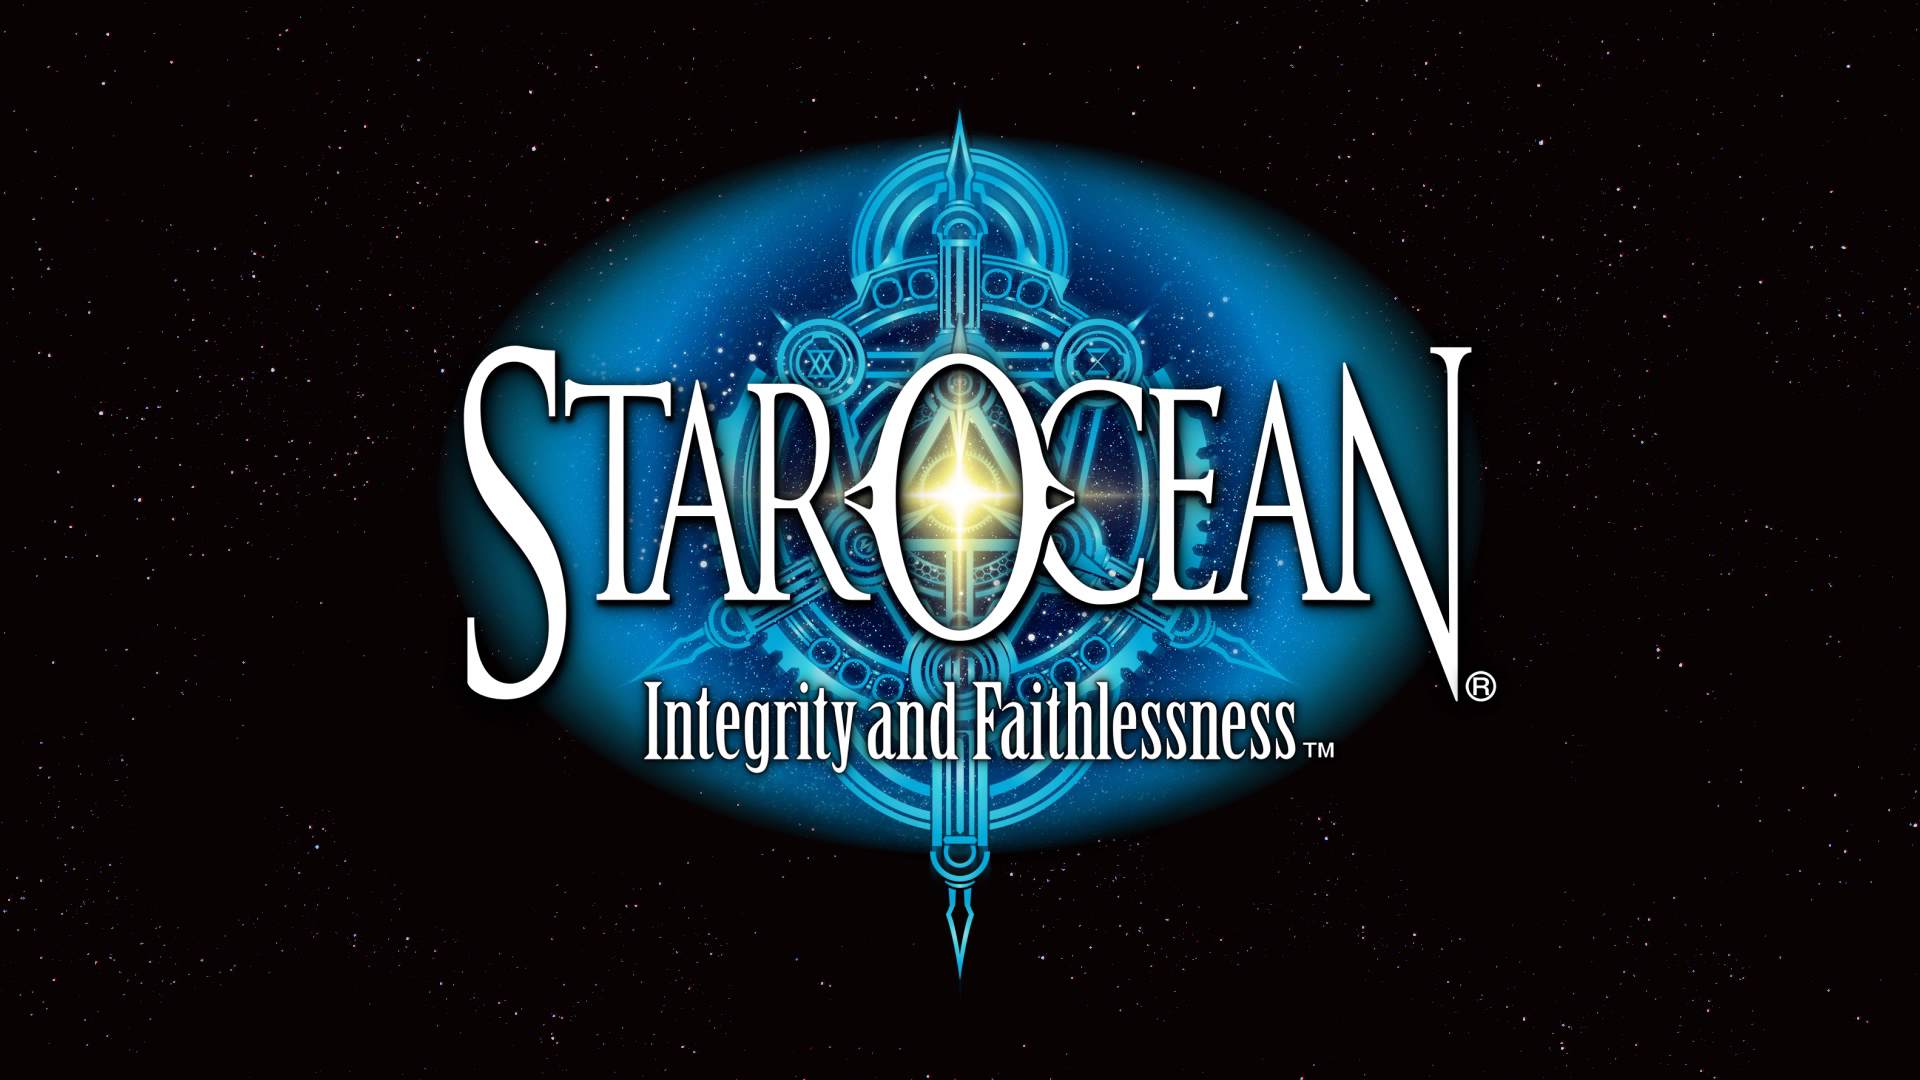 star-ocean-integrity-and-faithlessness-review-004